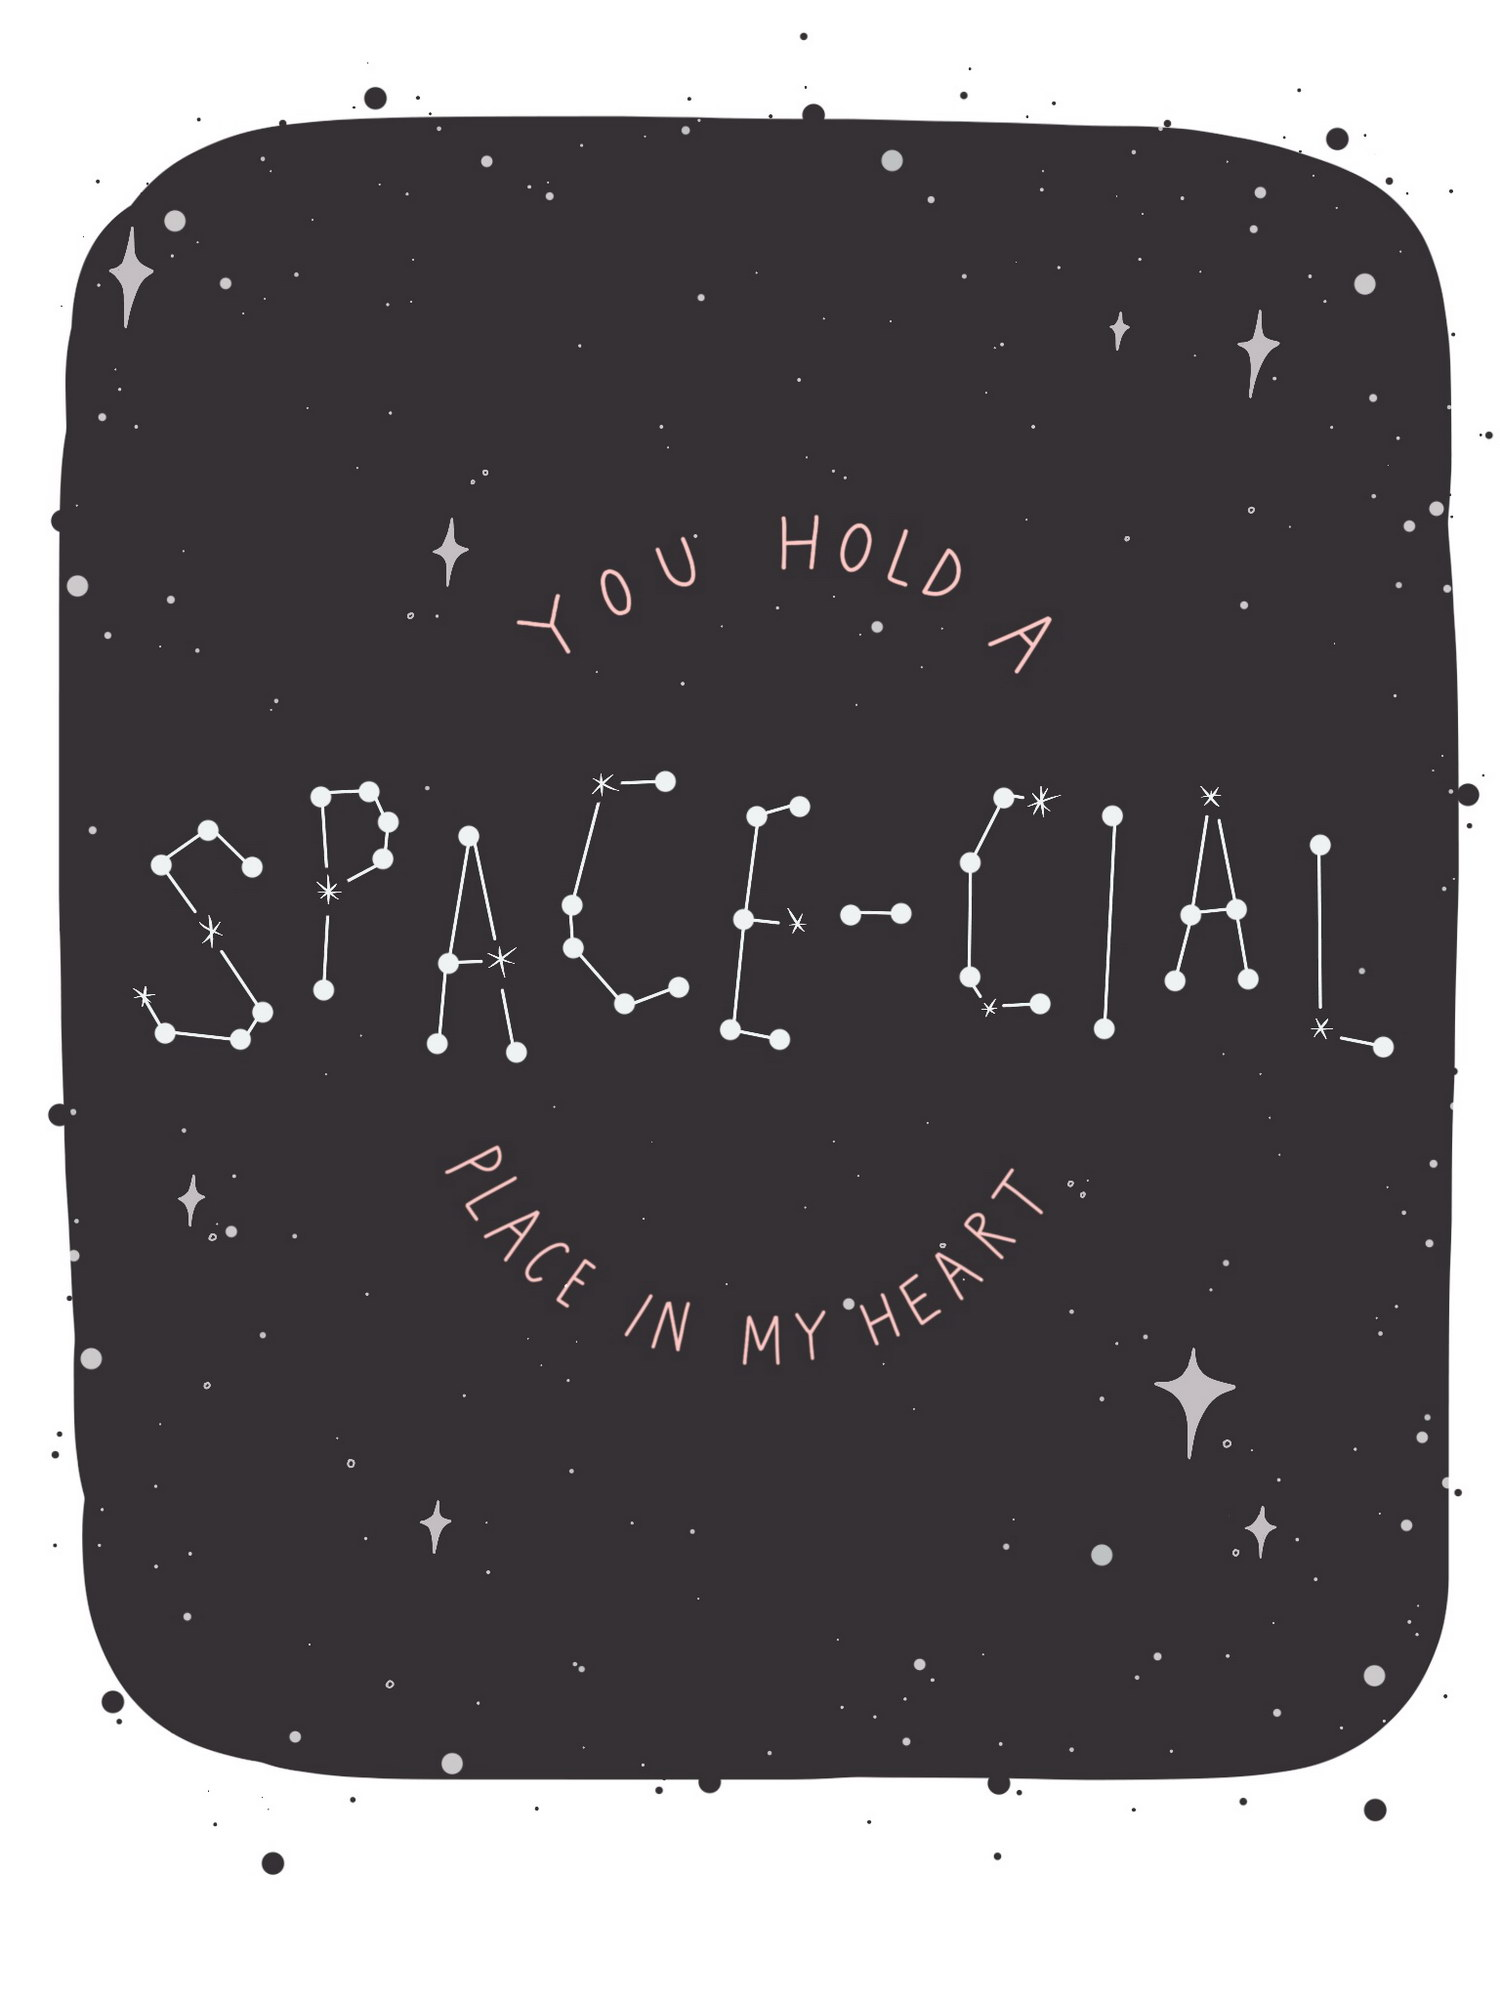 You Hold A Space Cial Place In My Heart